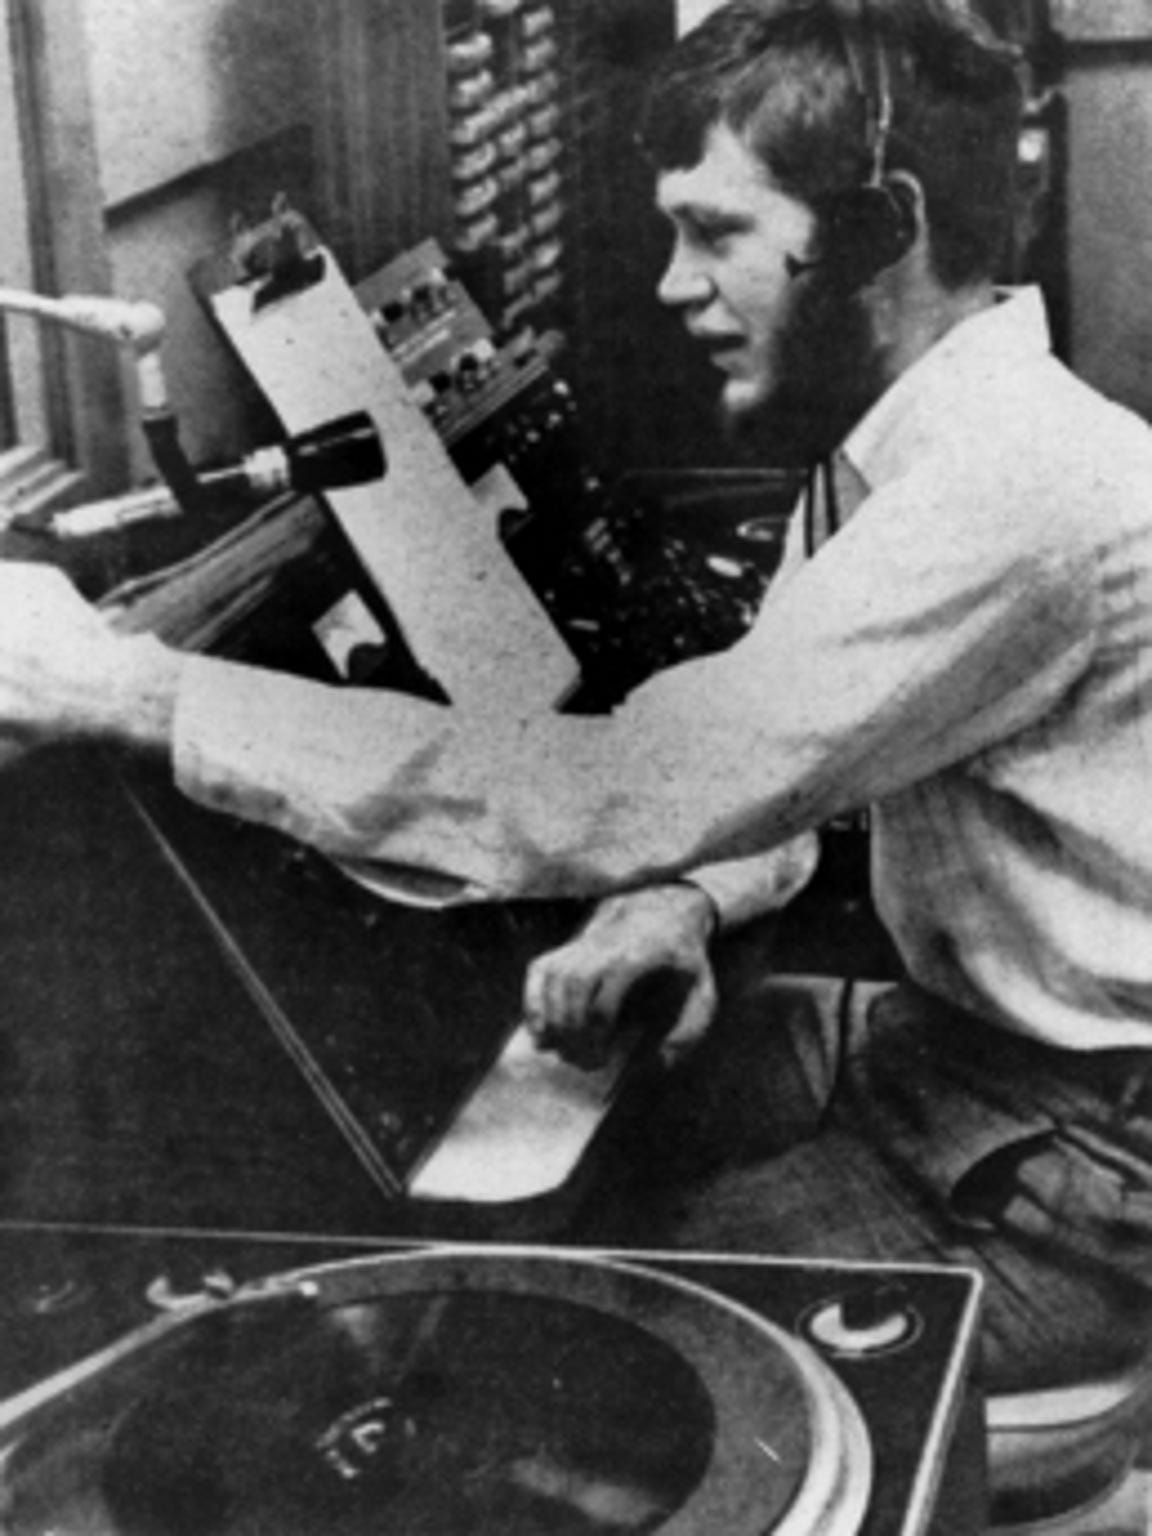 In 1968 Letterman worked as a disc jockey for WBST,